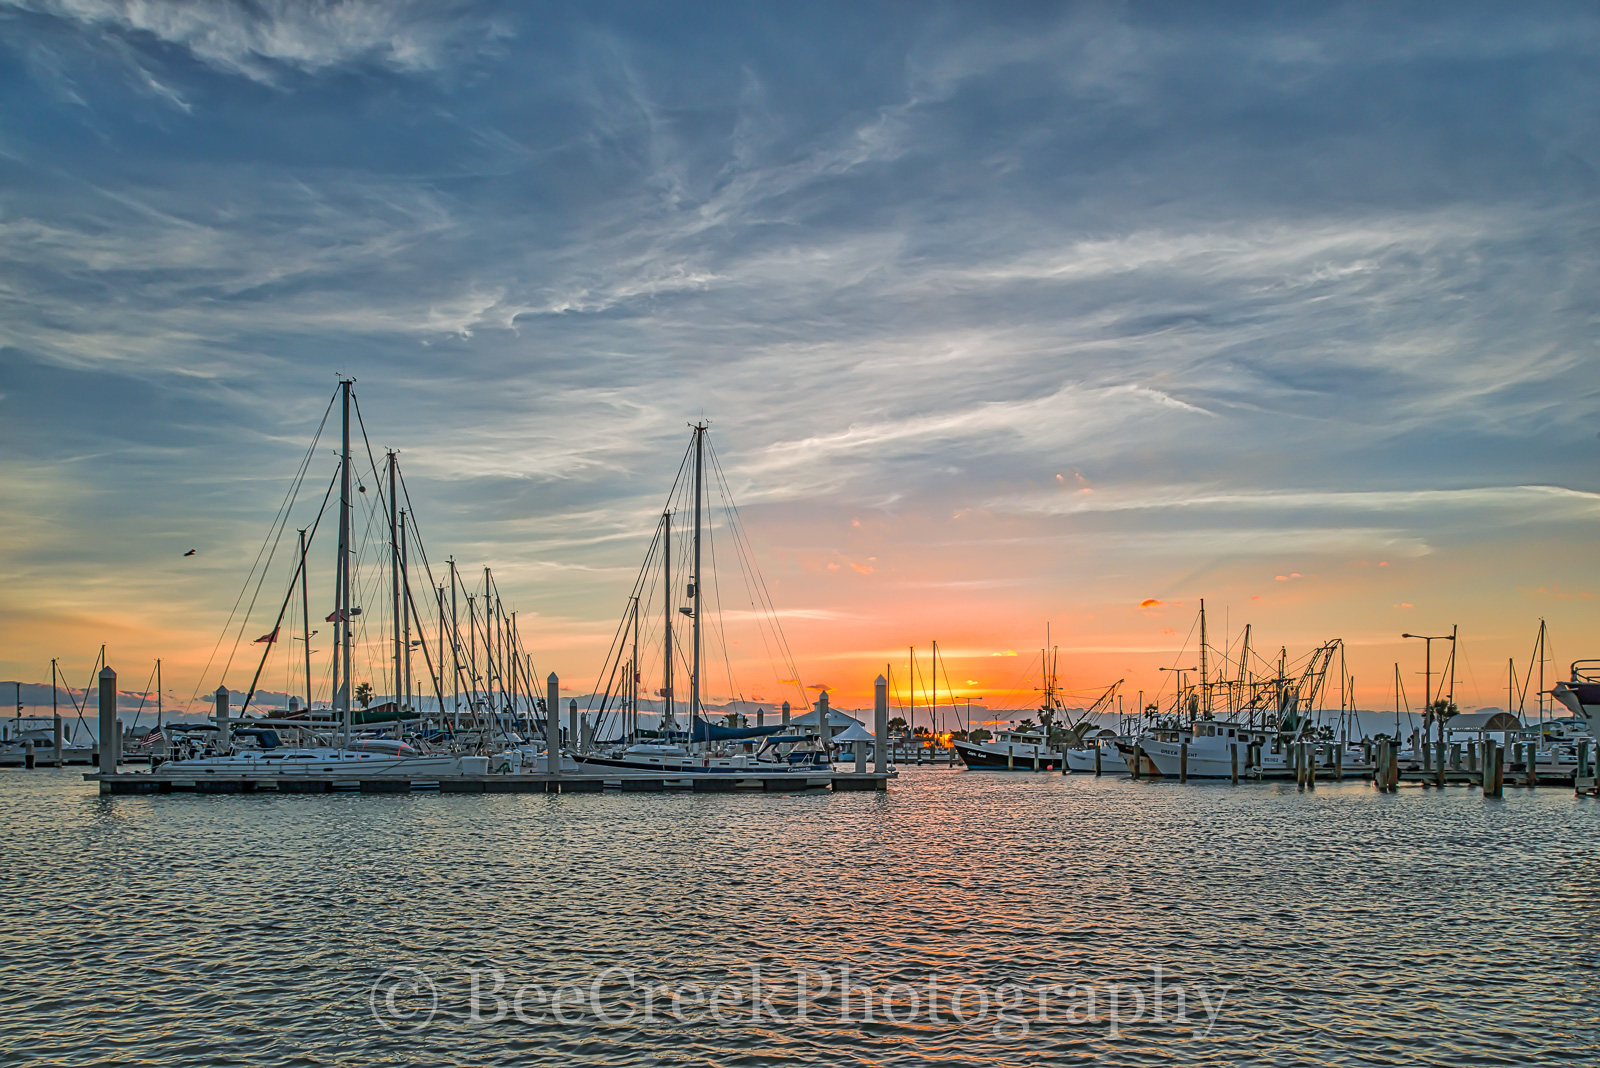 Corpus Christi sunrise, Sunrise, Texas Coast, bay, boats, city, coastal, colorful sky, docks, gulf of mexico, landscape, landscapes, marina, marina sunrise, ocean, scenic, seascape, seawall, shore, te, photo